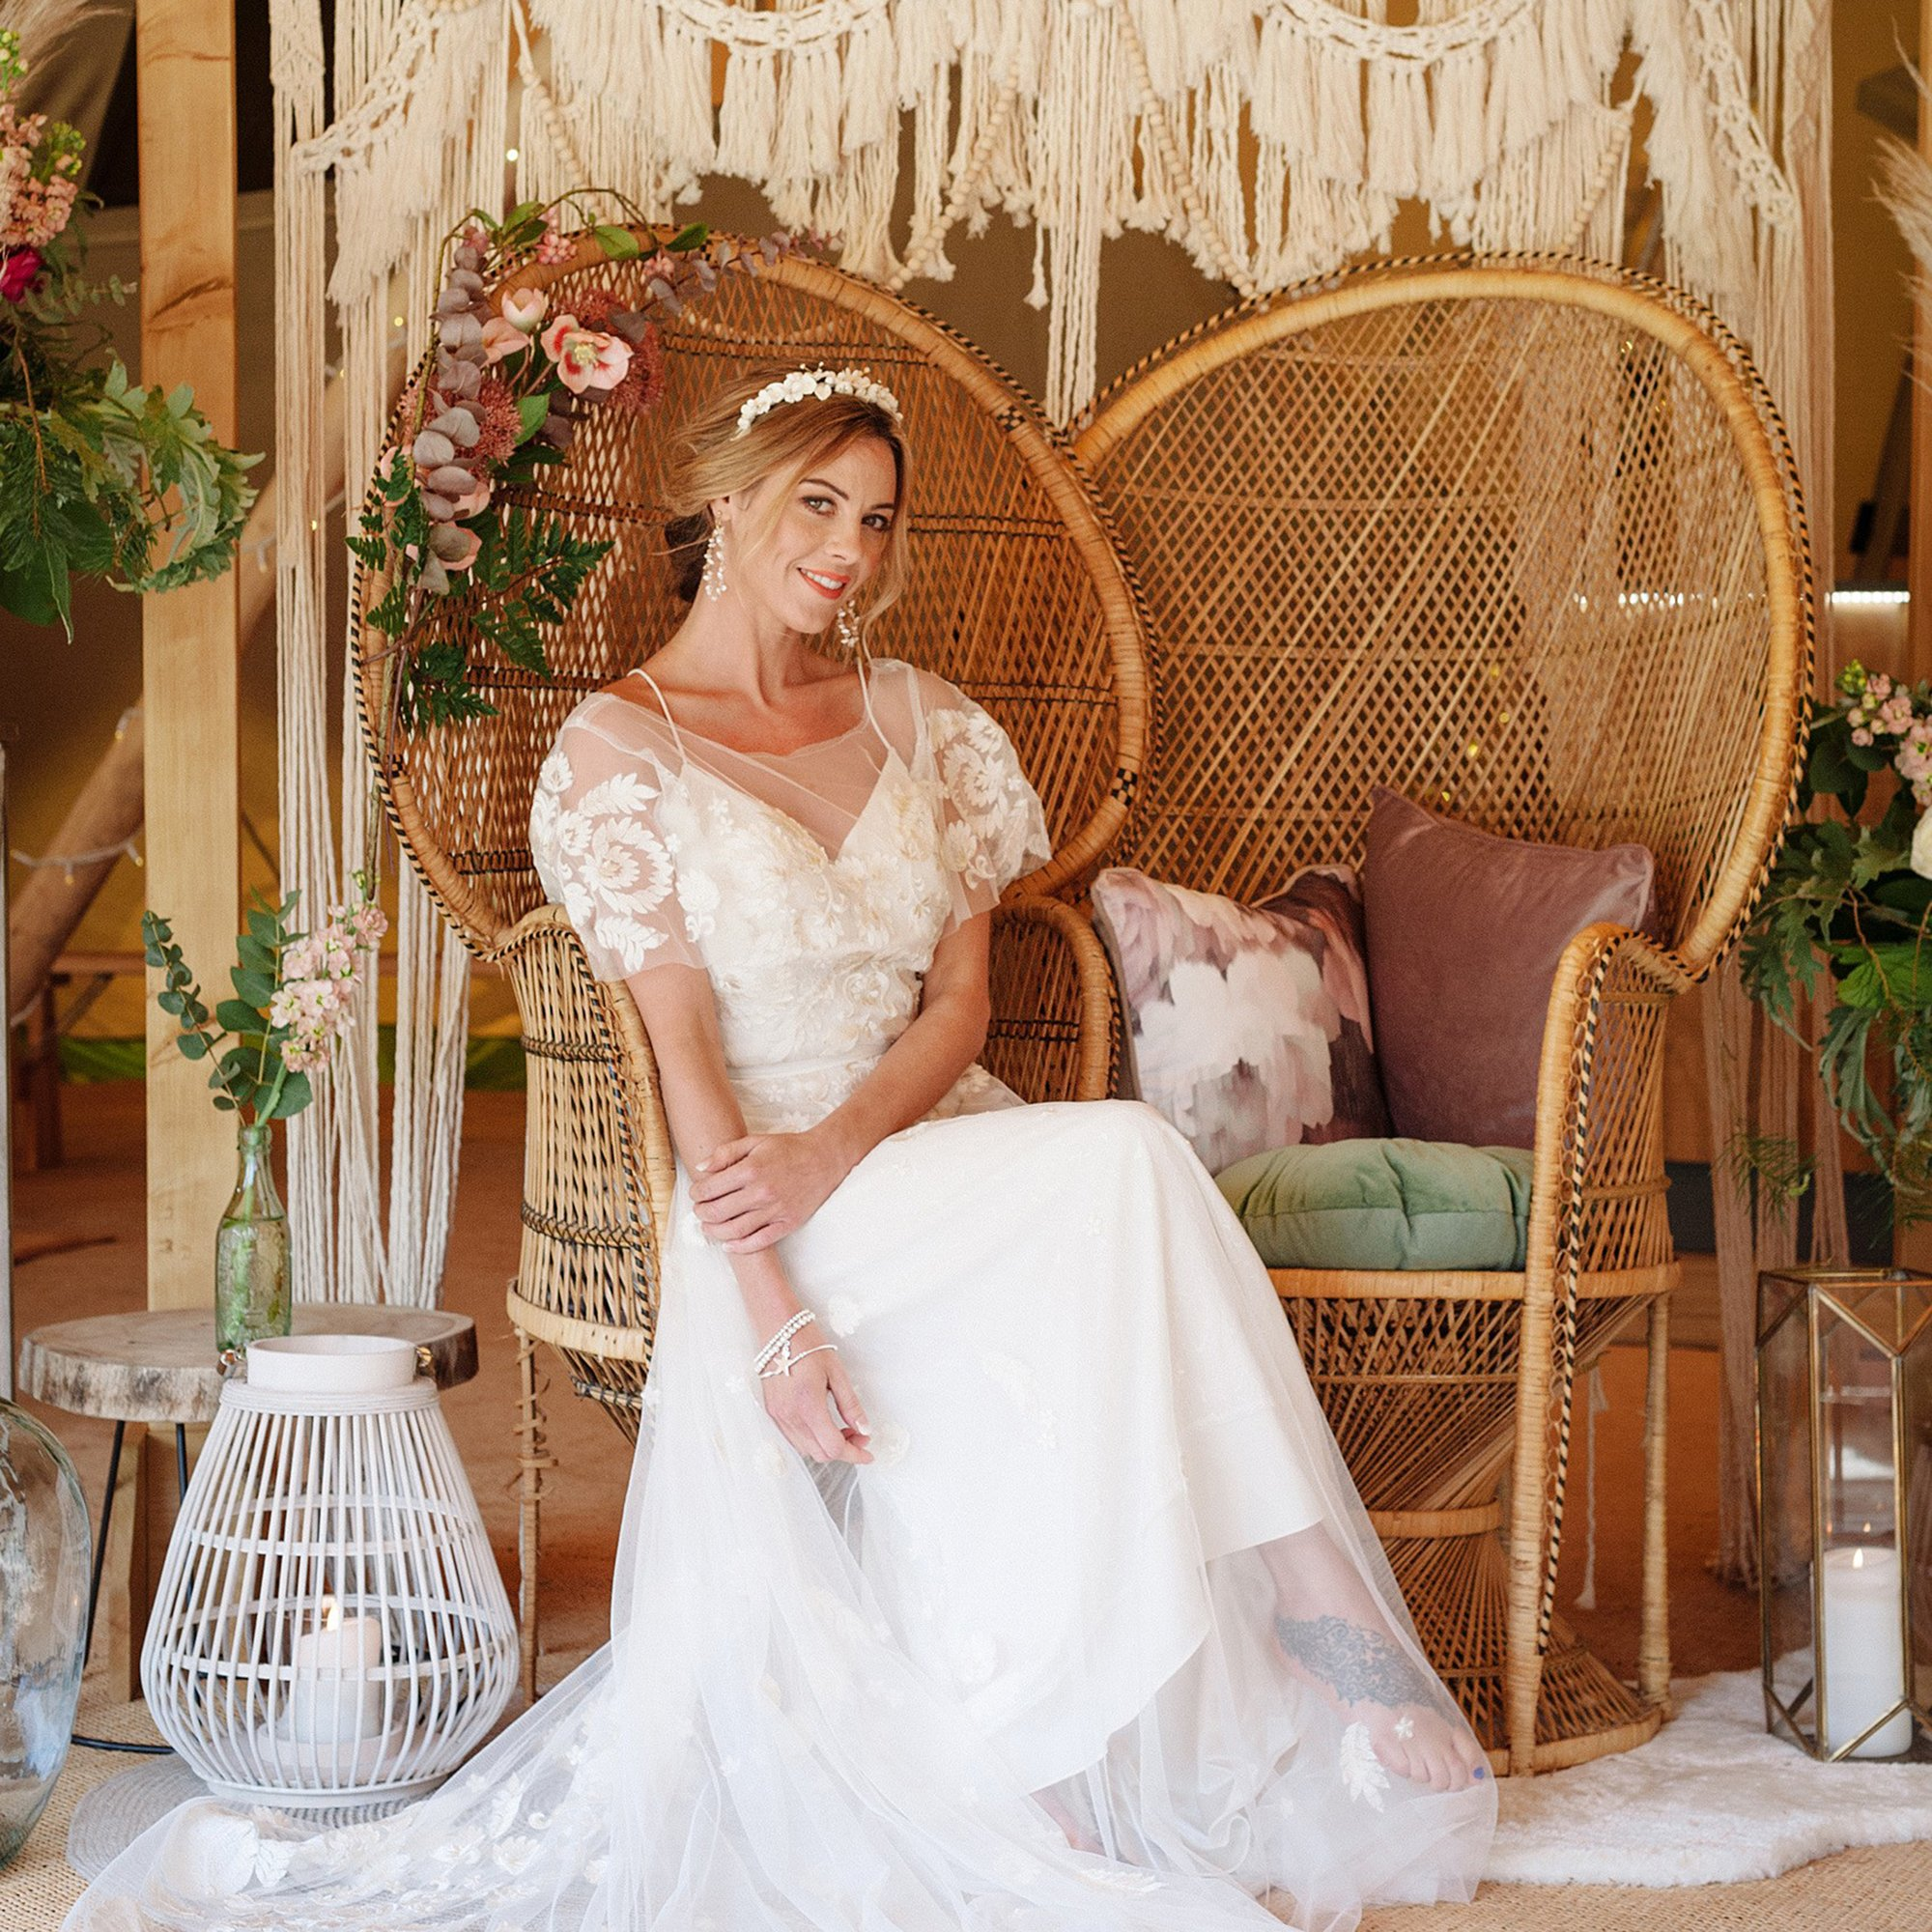 Boho Tipi Bride Wedding Inspiration | Flamboyant Invites